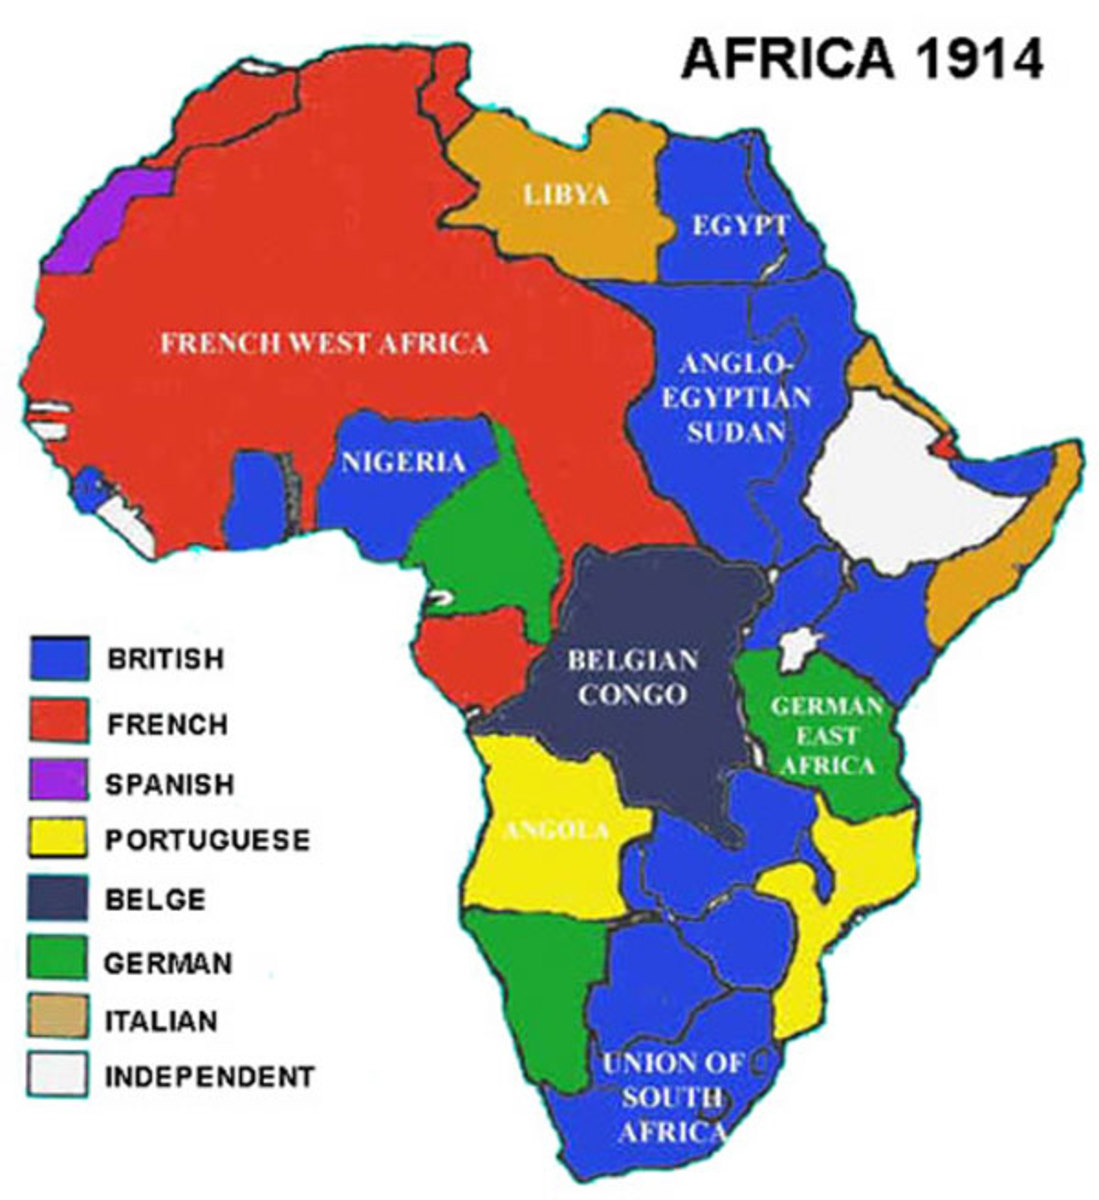 Carving up of Africa by the Europeans